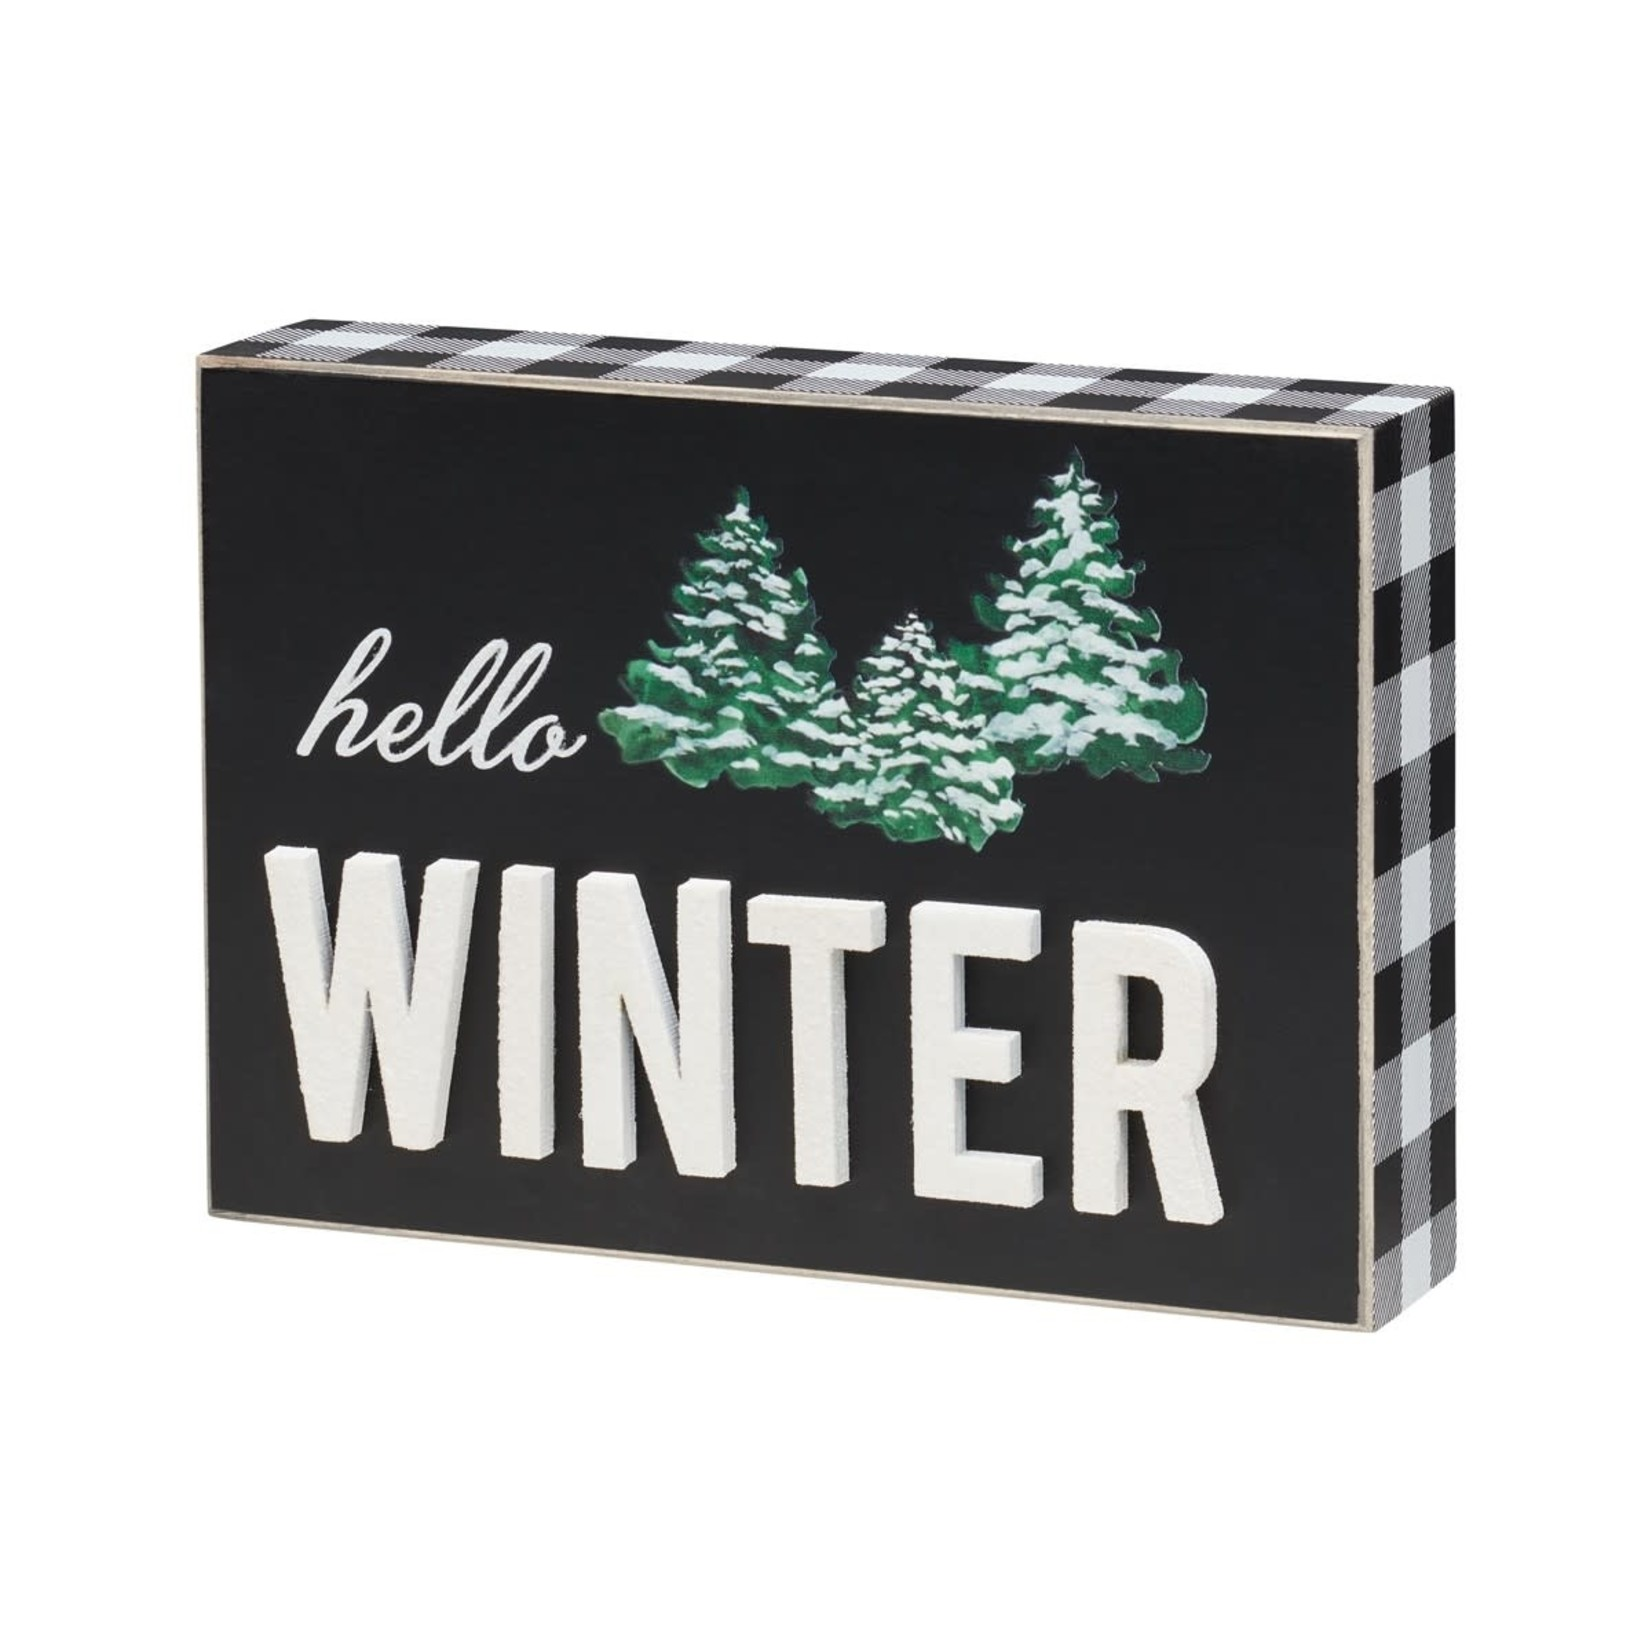 Collins Painting Winter 3D Glitter Box Sign